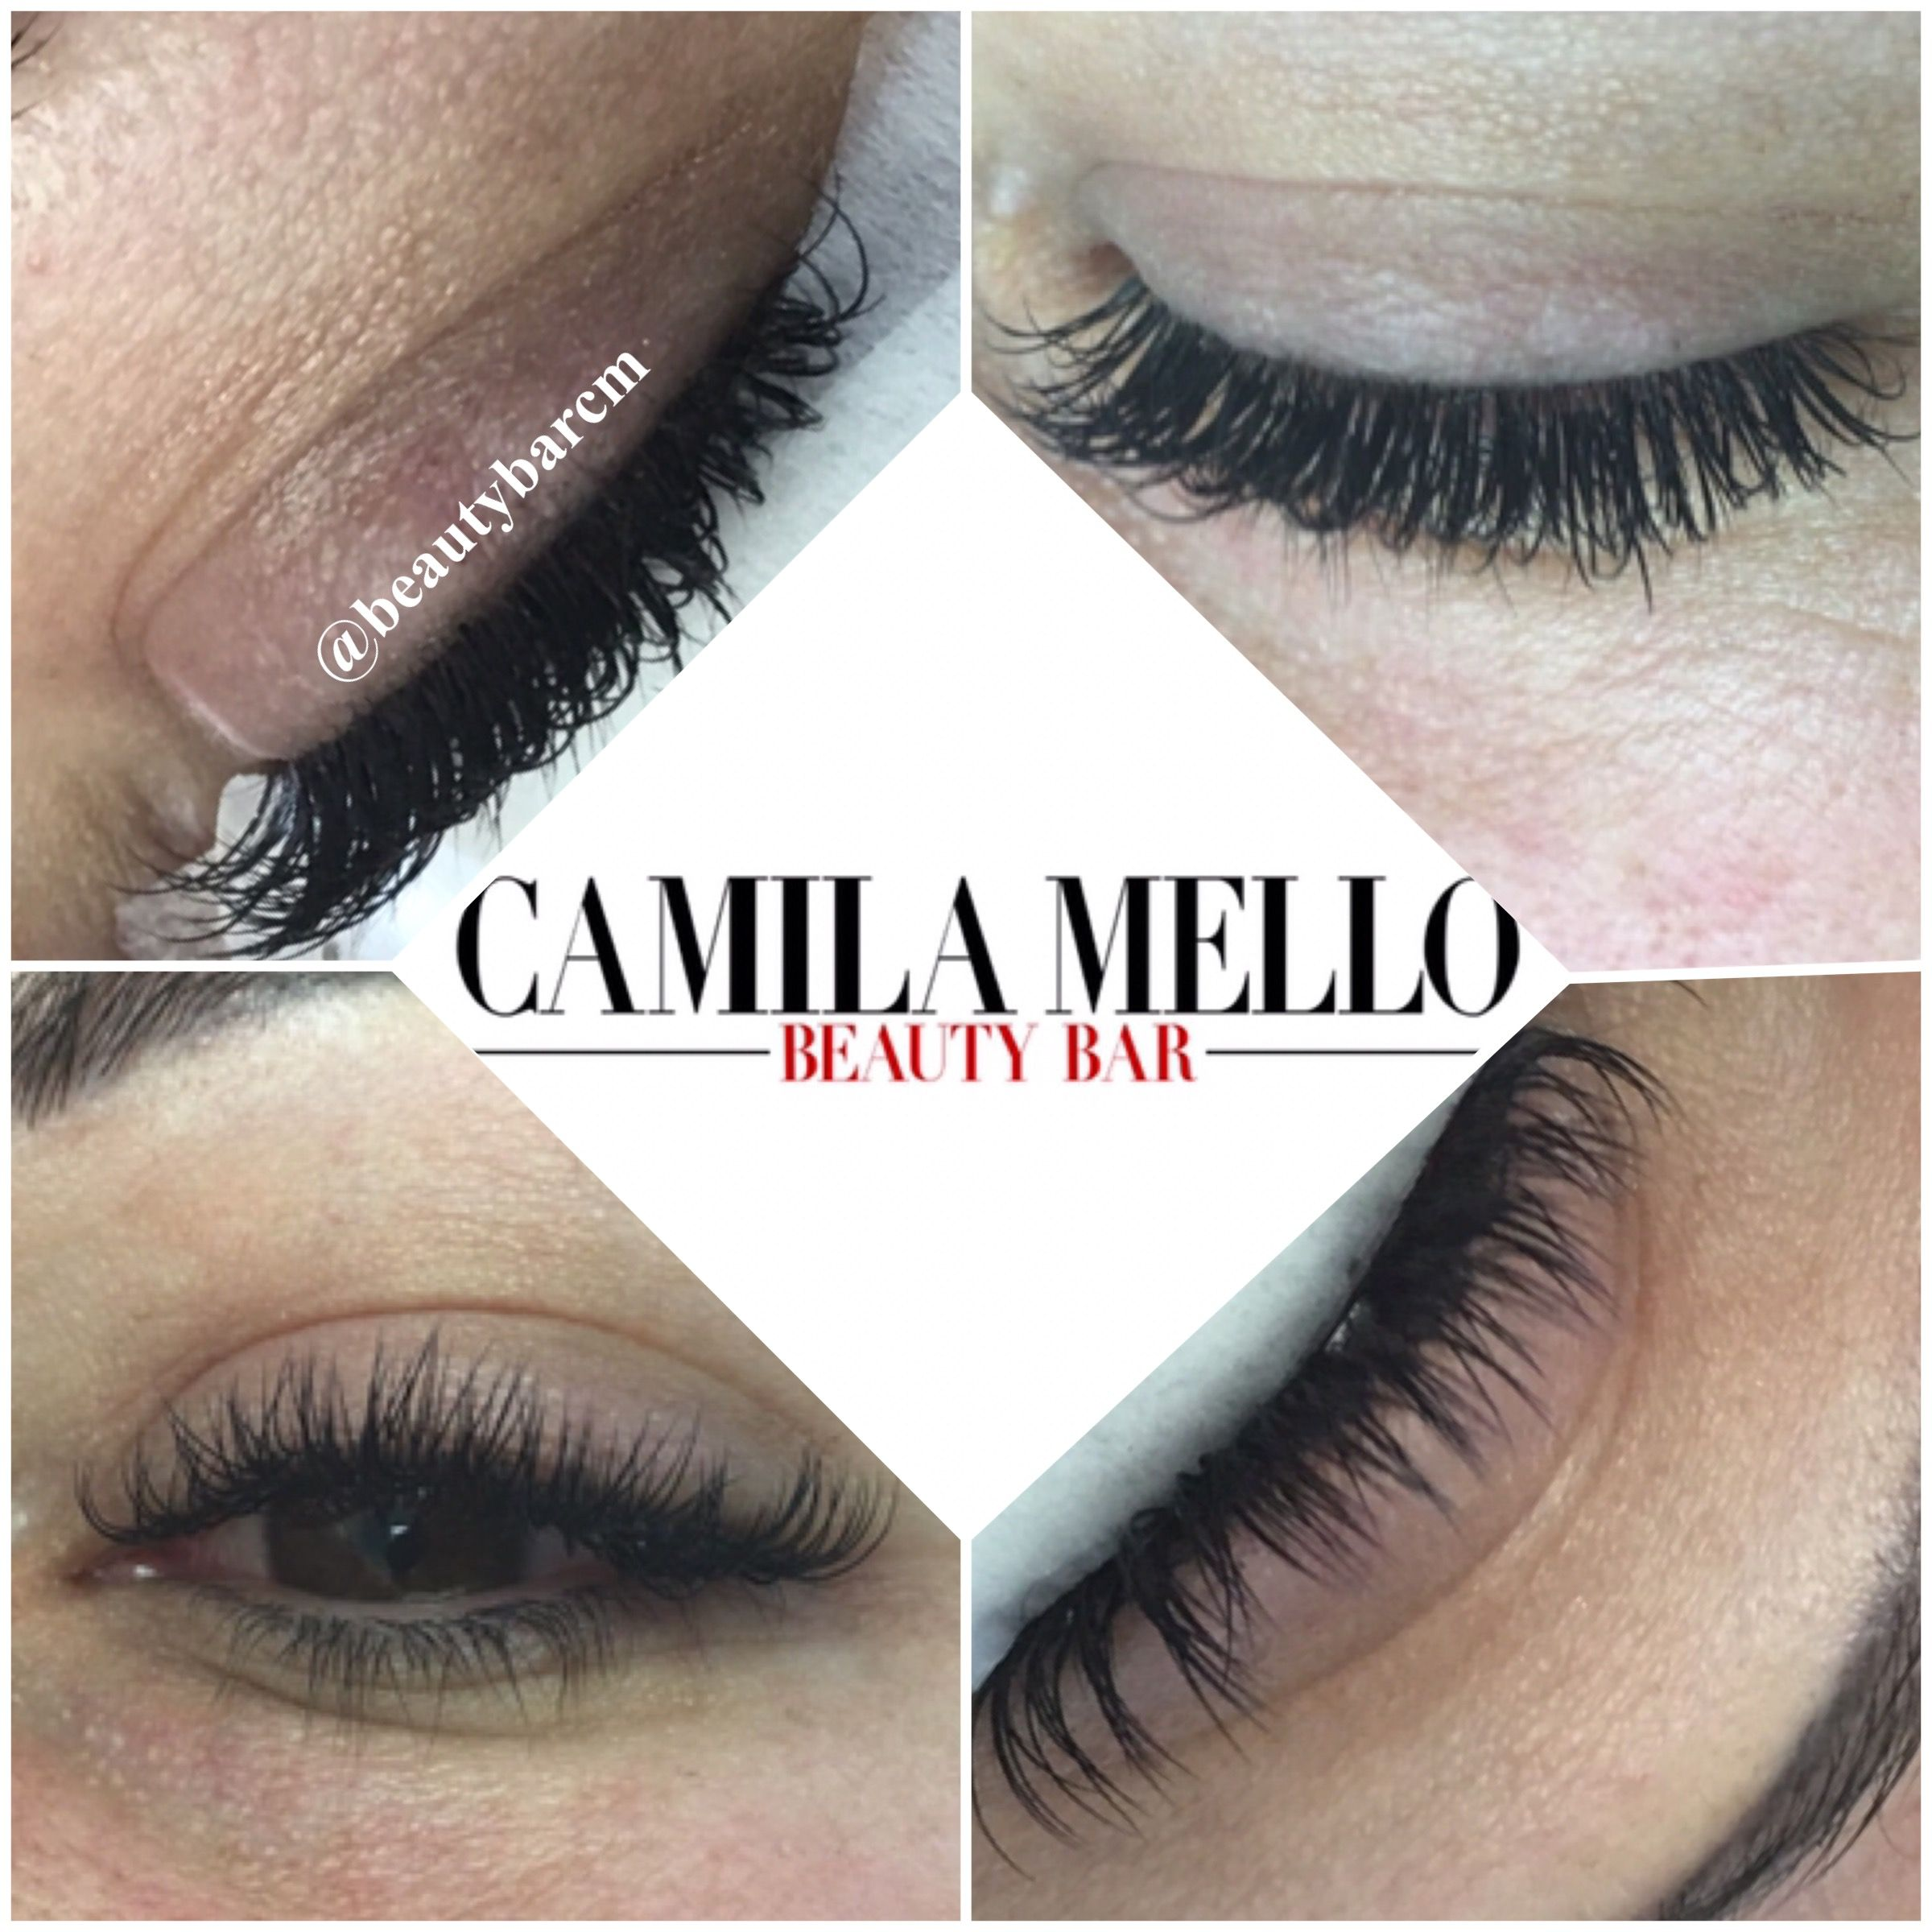 The Lash Curl Is A Semi Permanent Beauty Treatment That Will Create